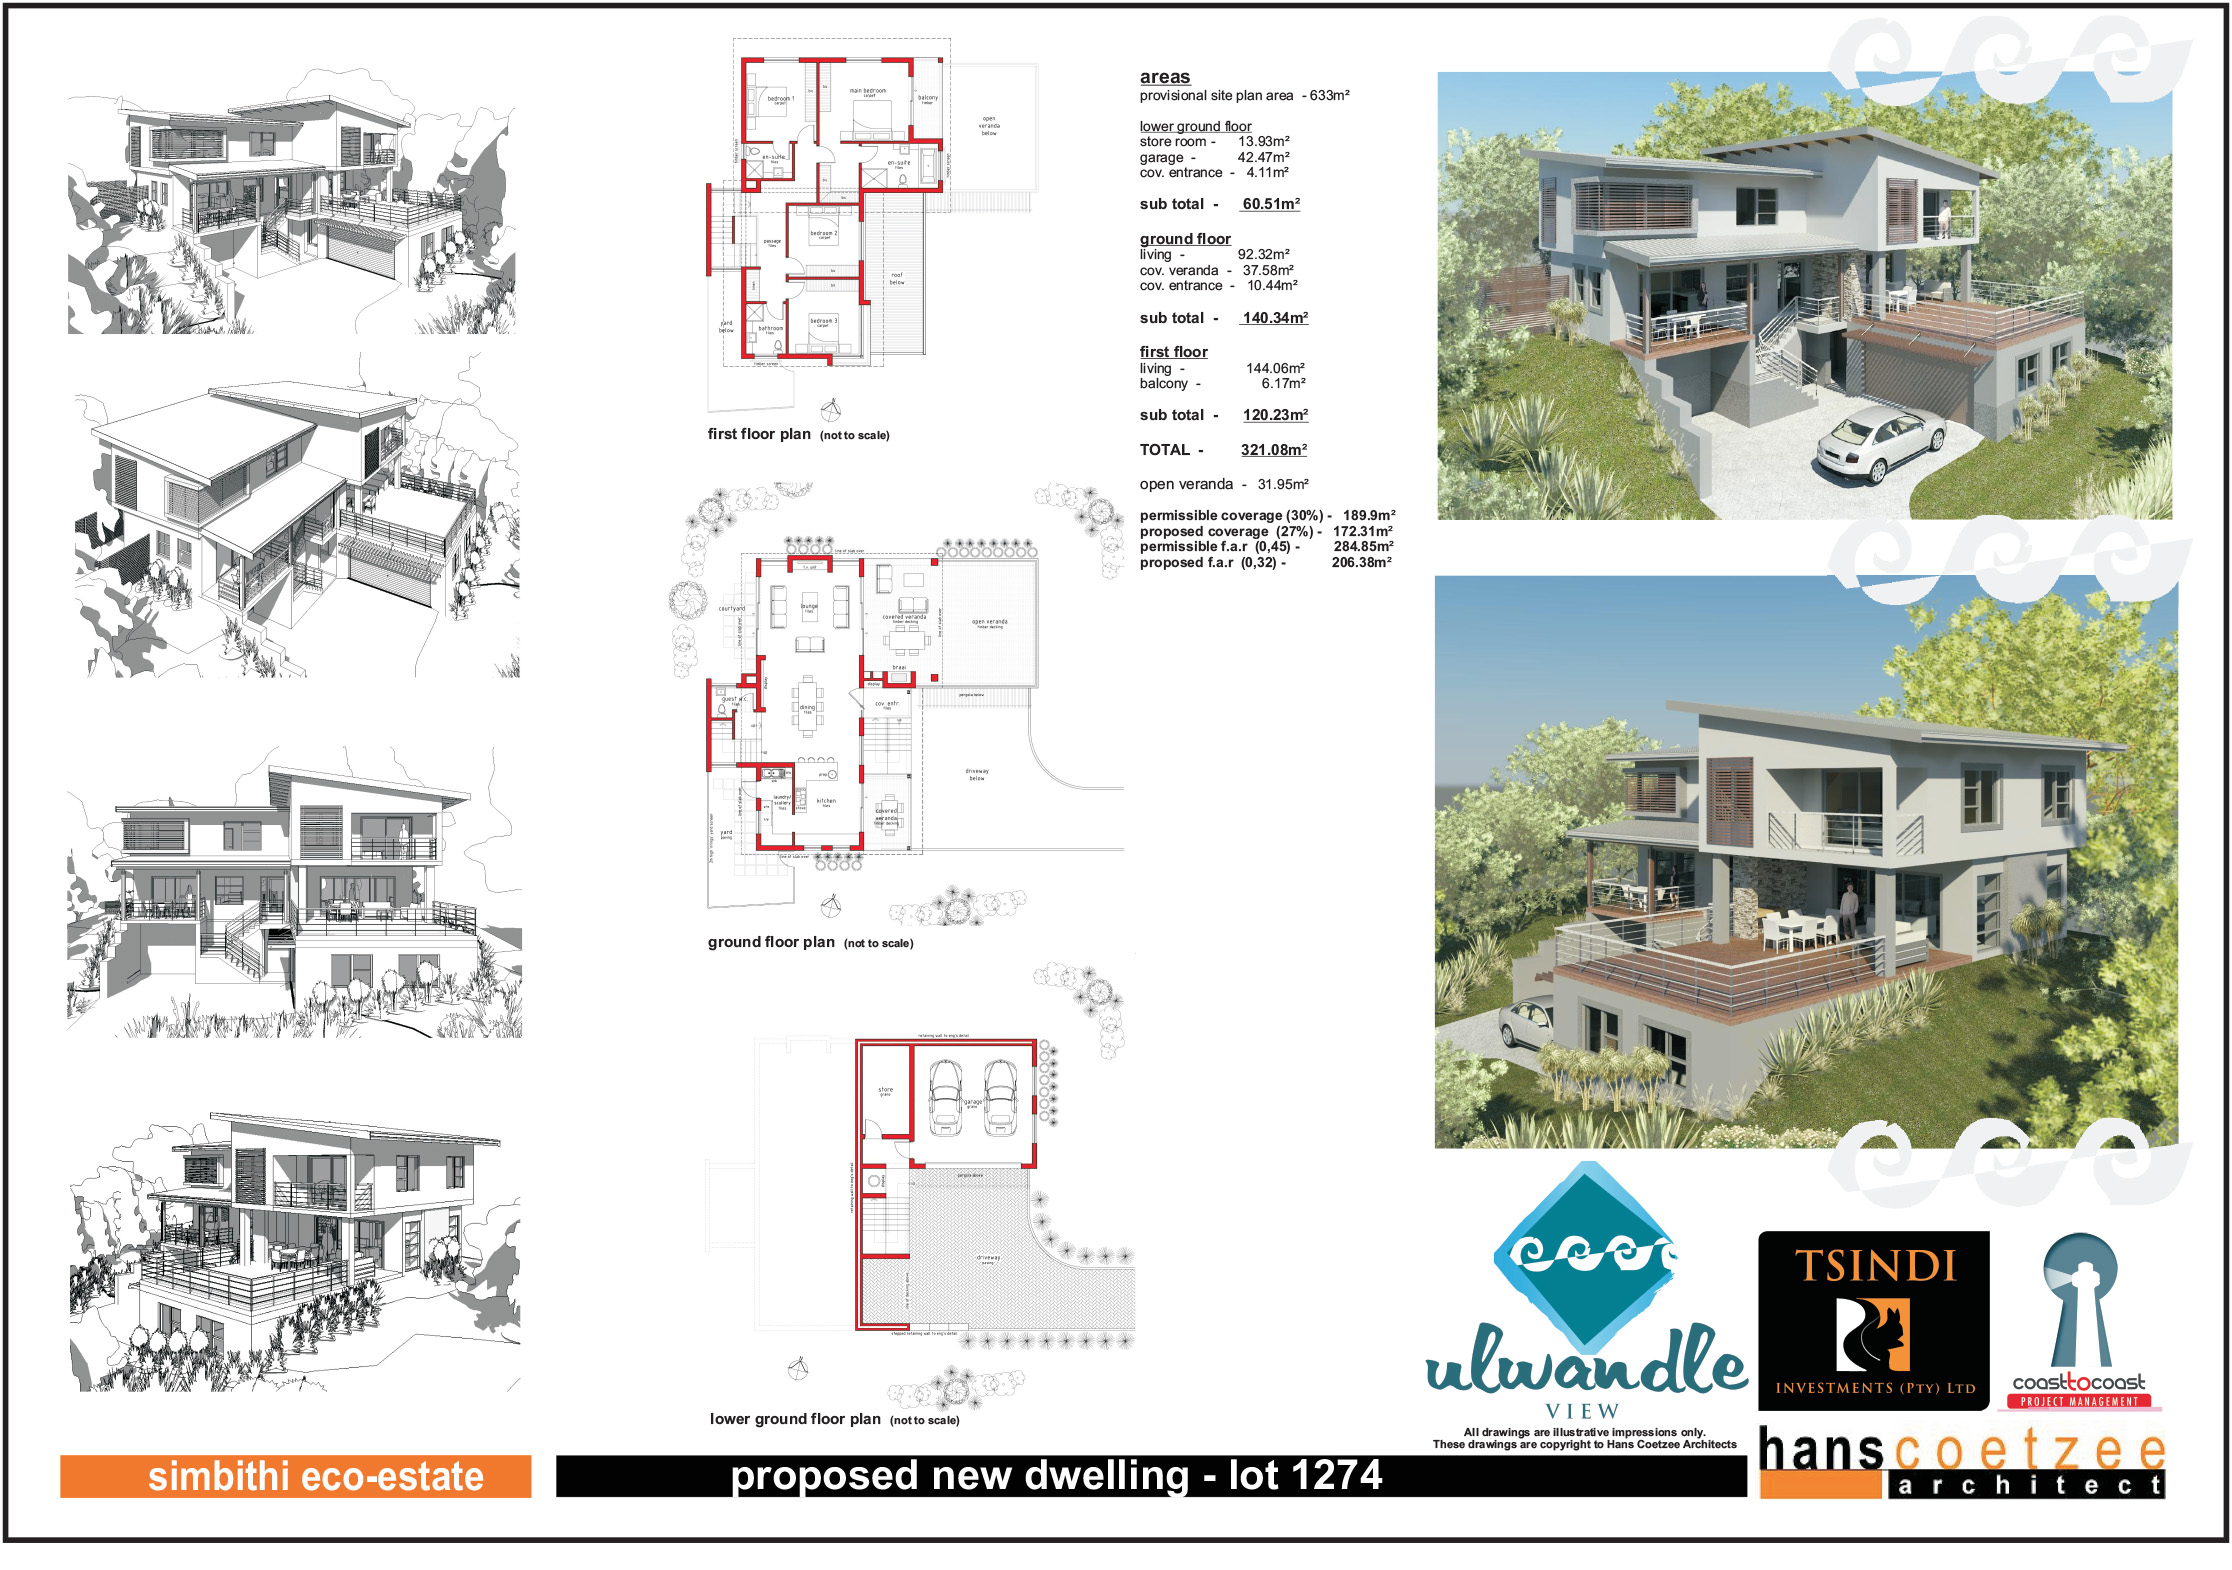 4 BedroomHouse For Sale In Simbithi Eco Estate